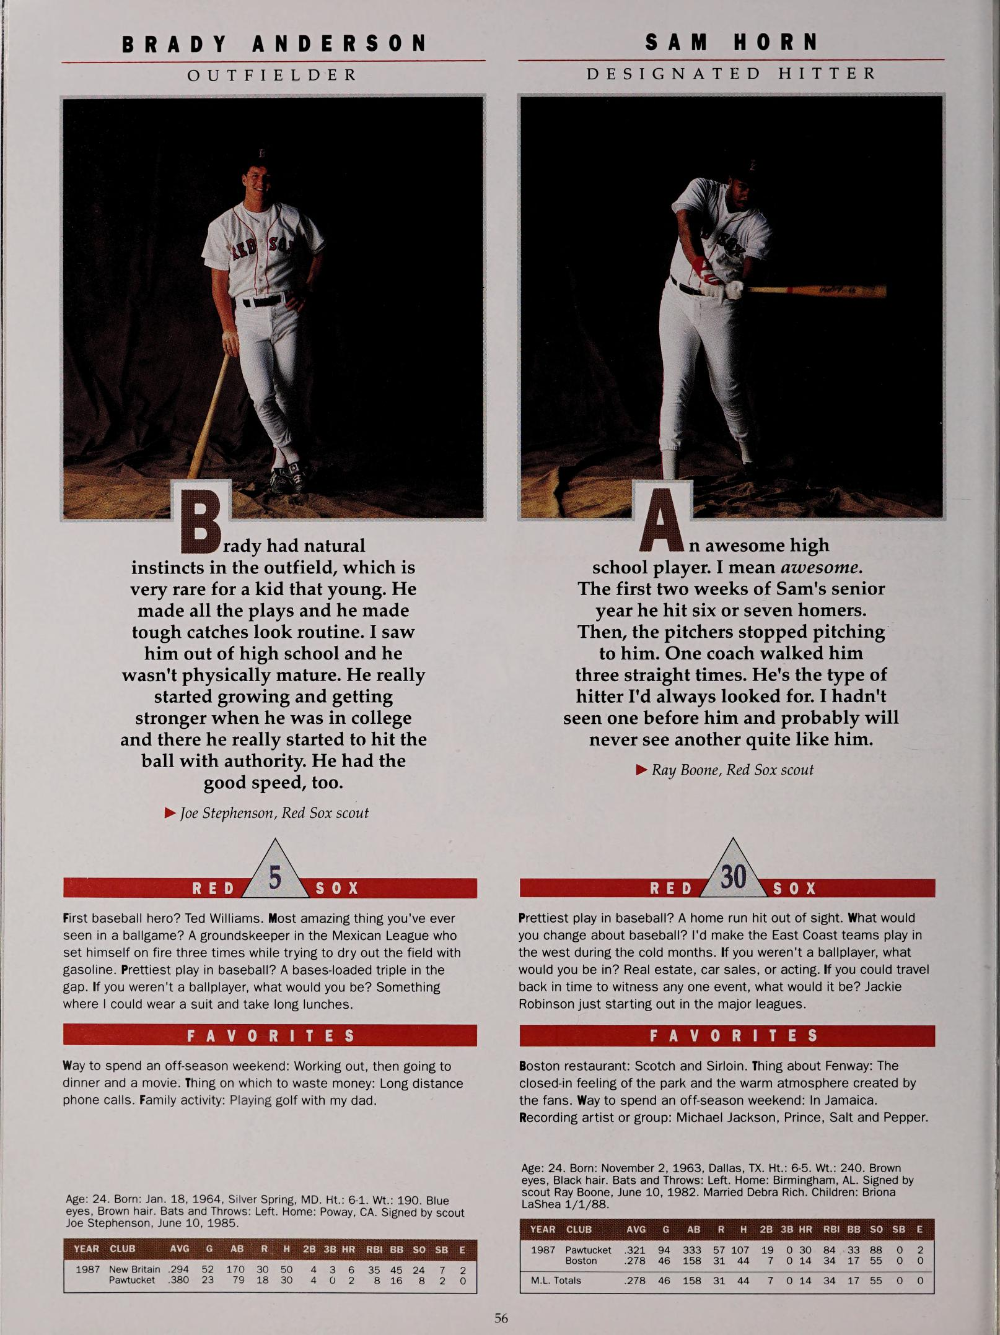 Boston Red Sox Yearbook Boston Red Sox Baseball Team Free Download Borrow And Streaming Internet Archive In 2020 Boston Red Sox Baseball Red Sox Baseball Boston Red Sox